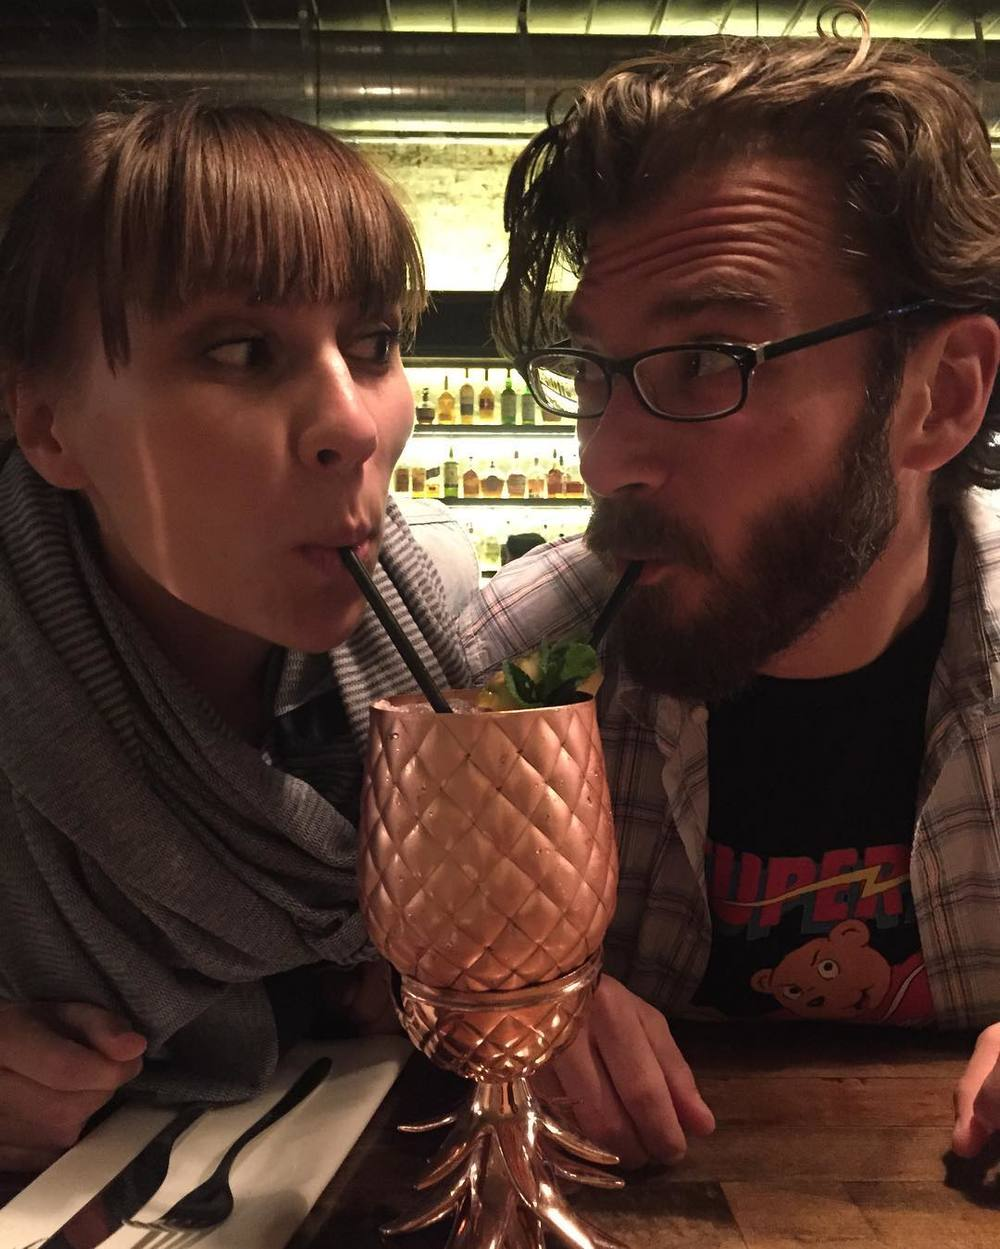 And we'll end with this overly-cute photo from @kimimcclellan of a couple sharing a drink at 940's.